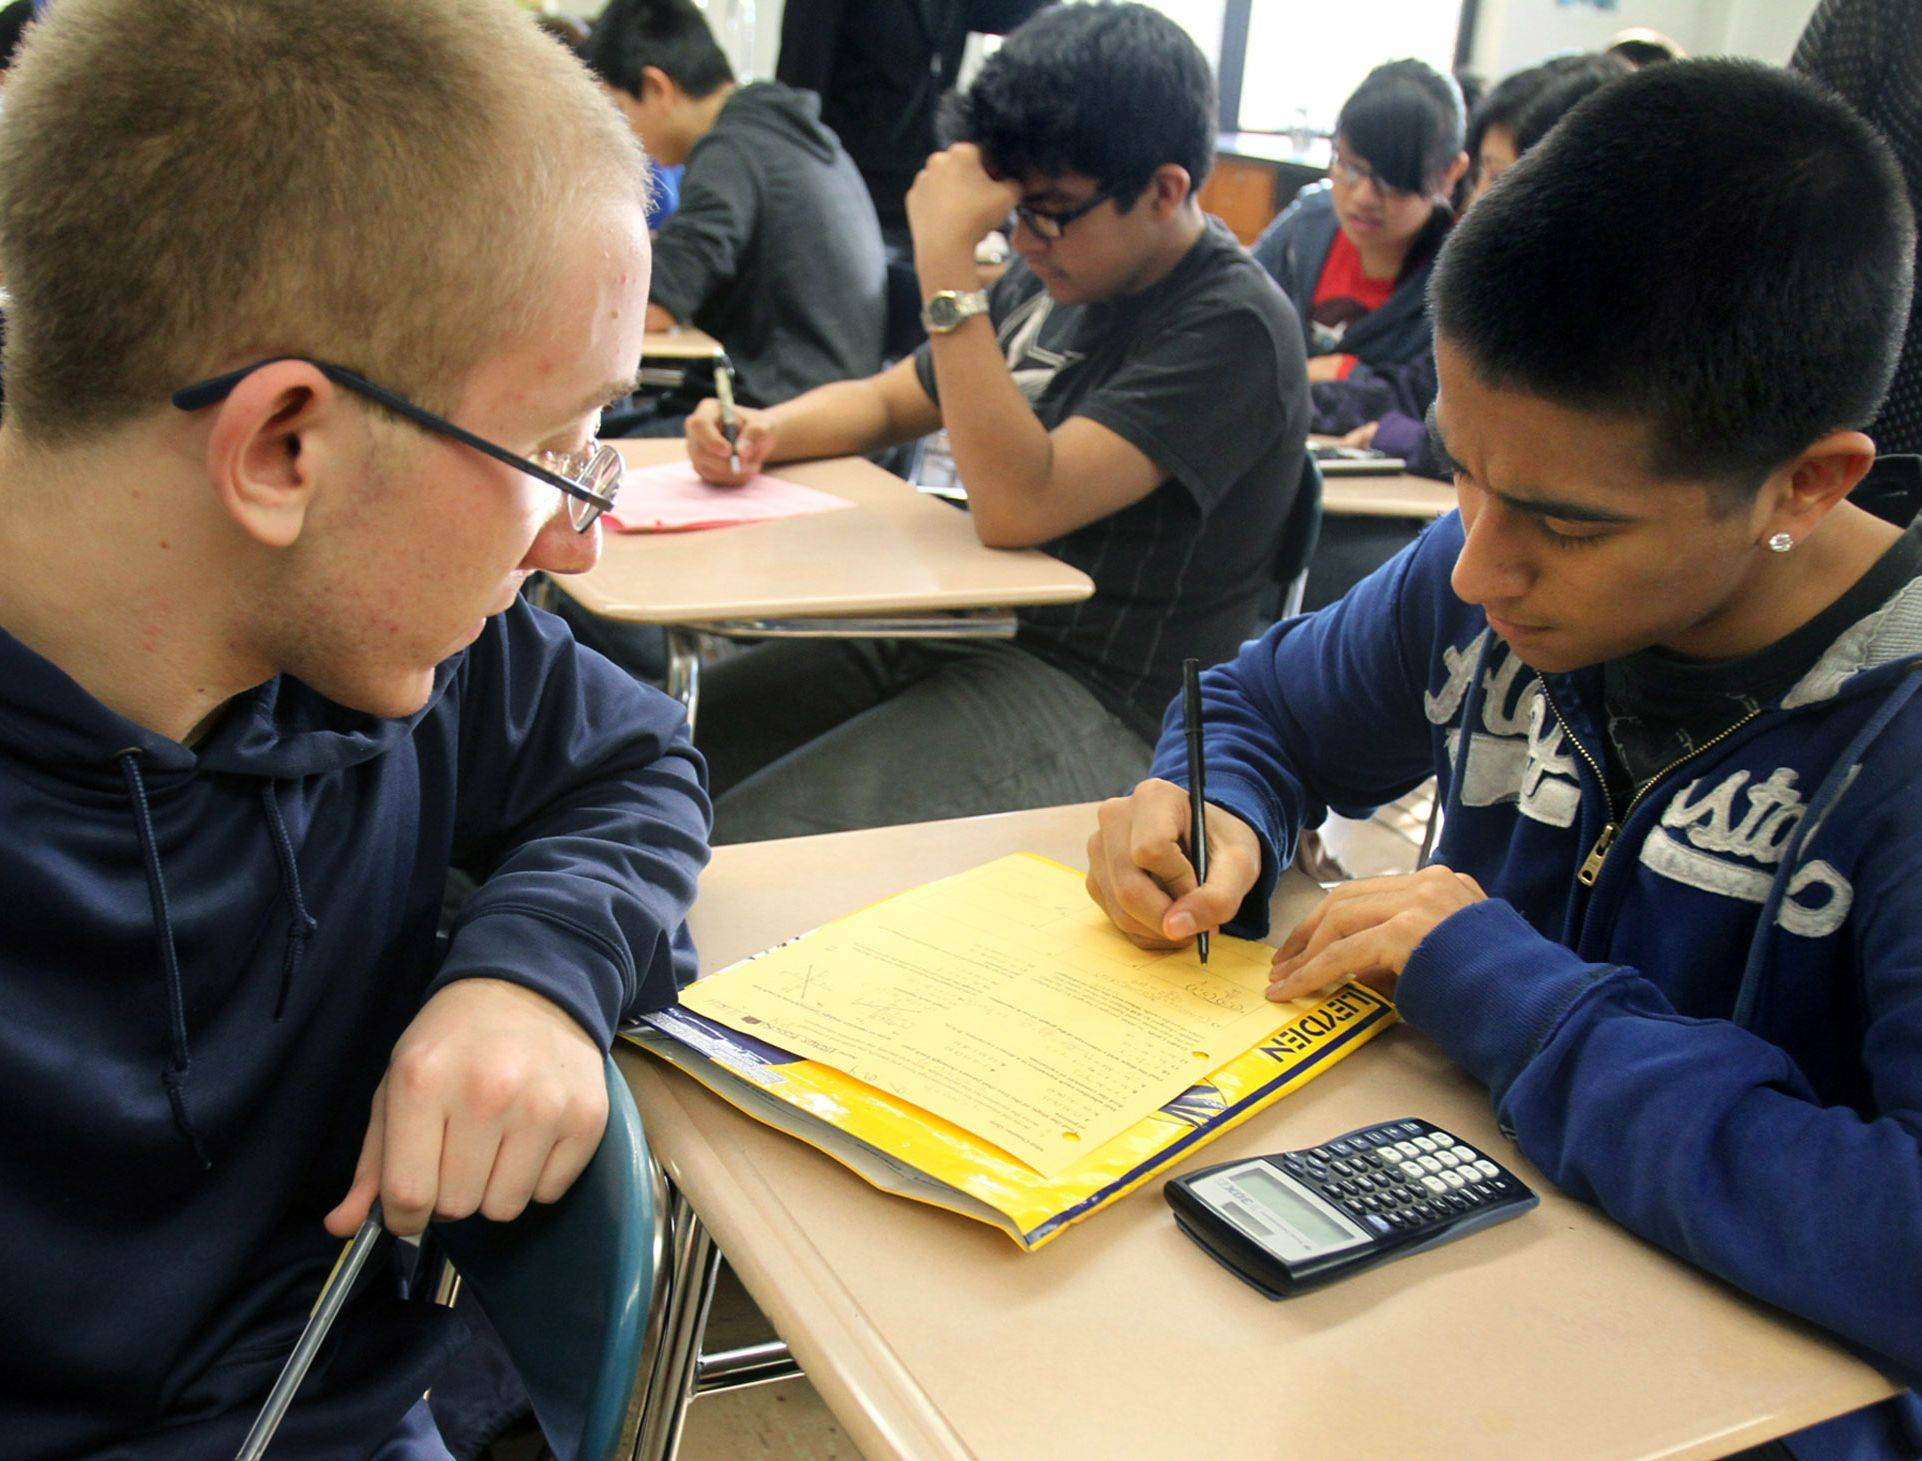 Robert Woods, a junior at West Leyden High School, left, mentors freshman Hector Herrera after school. The school, which ranks low in performance, isn't considering extending the day, but it does require freshmen and failing students to stay an extra 25 minutes.